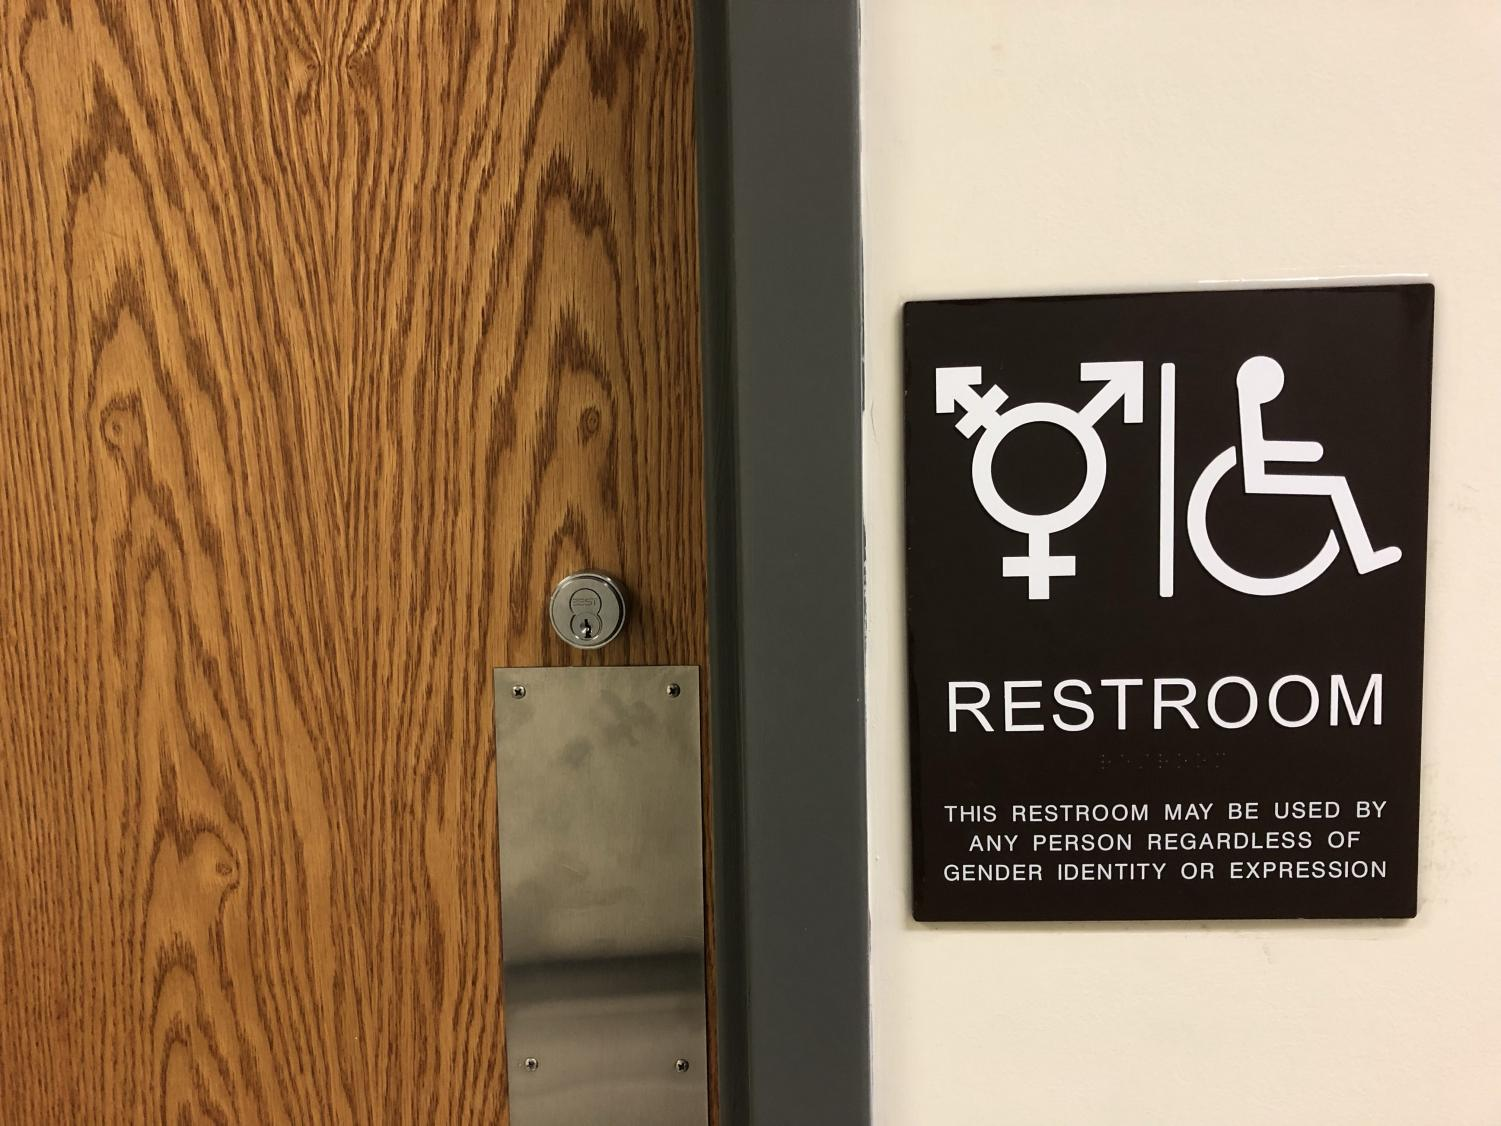 Gender neutral bathroom signs are featured throughout Moravian's campus to welcome people regardless of their sexual identity.